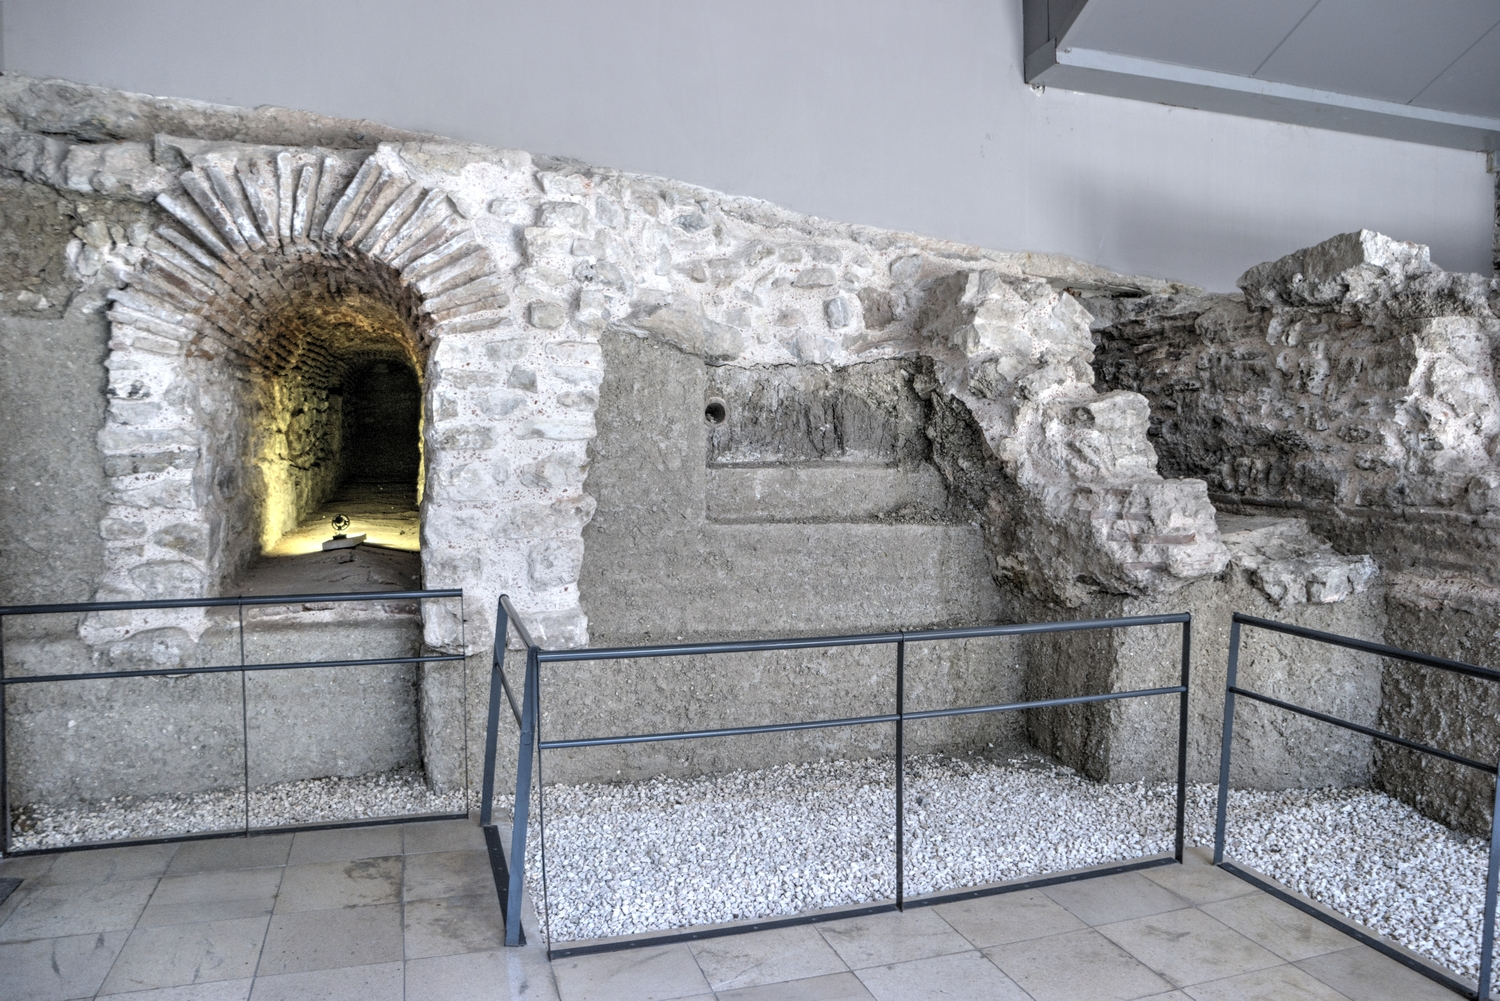 The underground remains of the Hippodrome of Constantinople